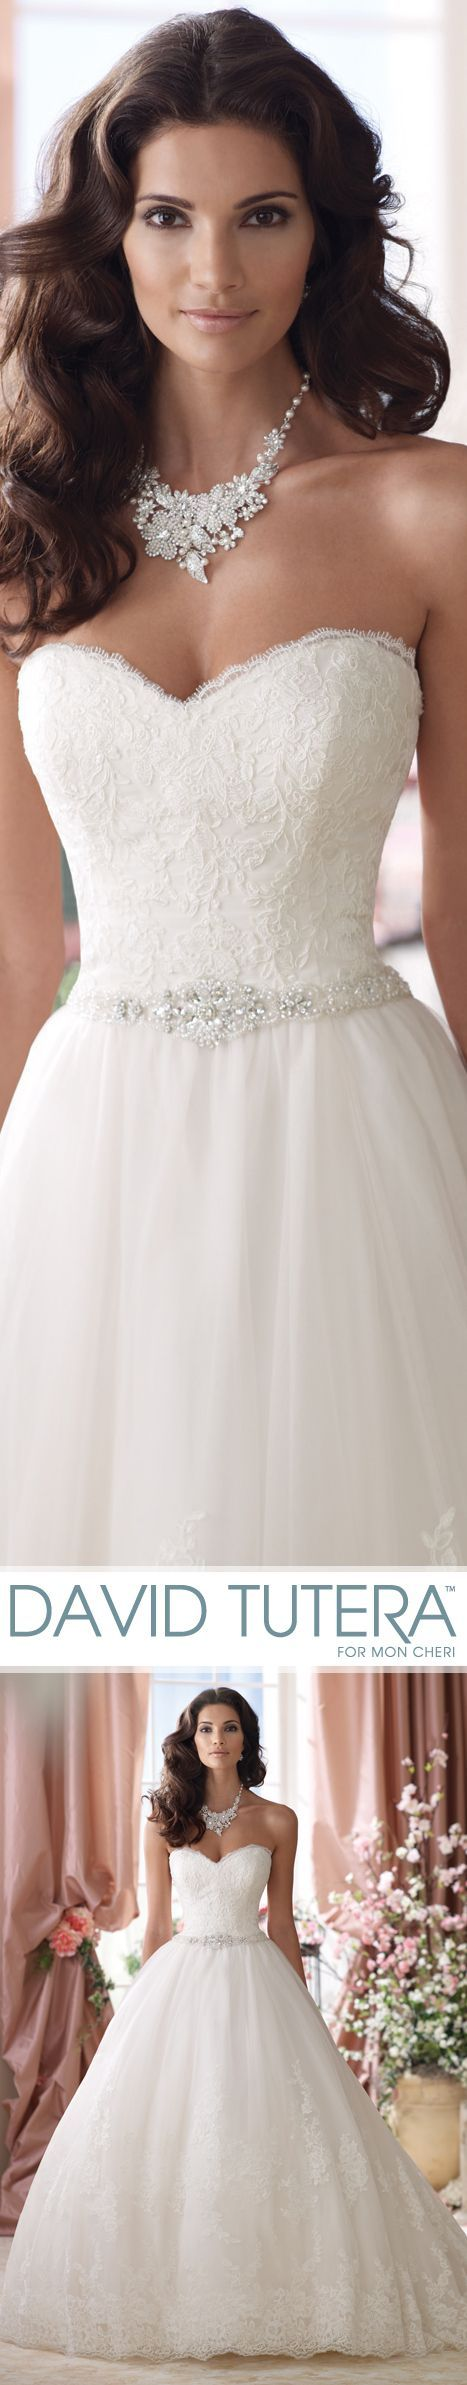 Vera Wedding Dresses 2014 Collection – Strapless embroidered lace and tulle ball gown wedding dress